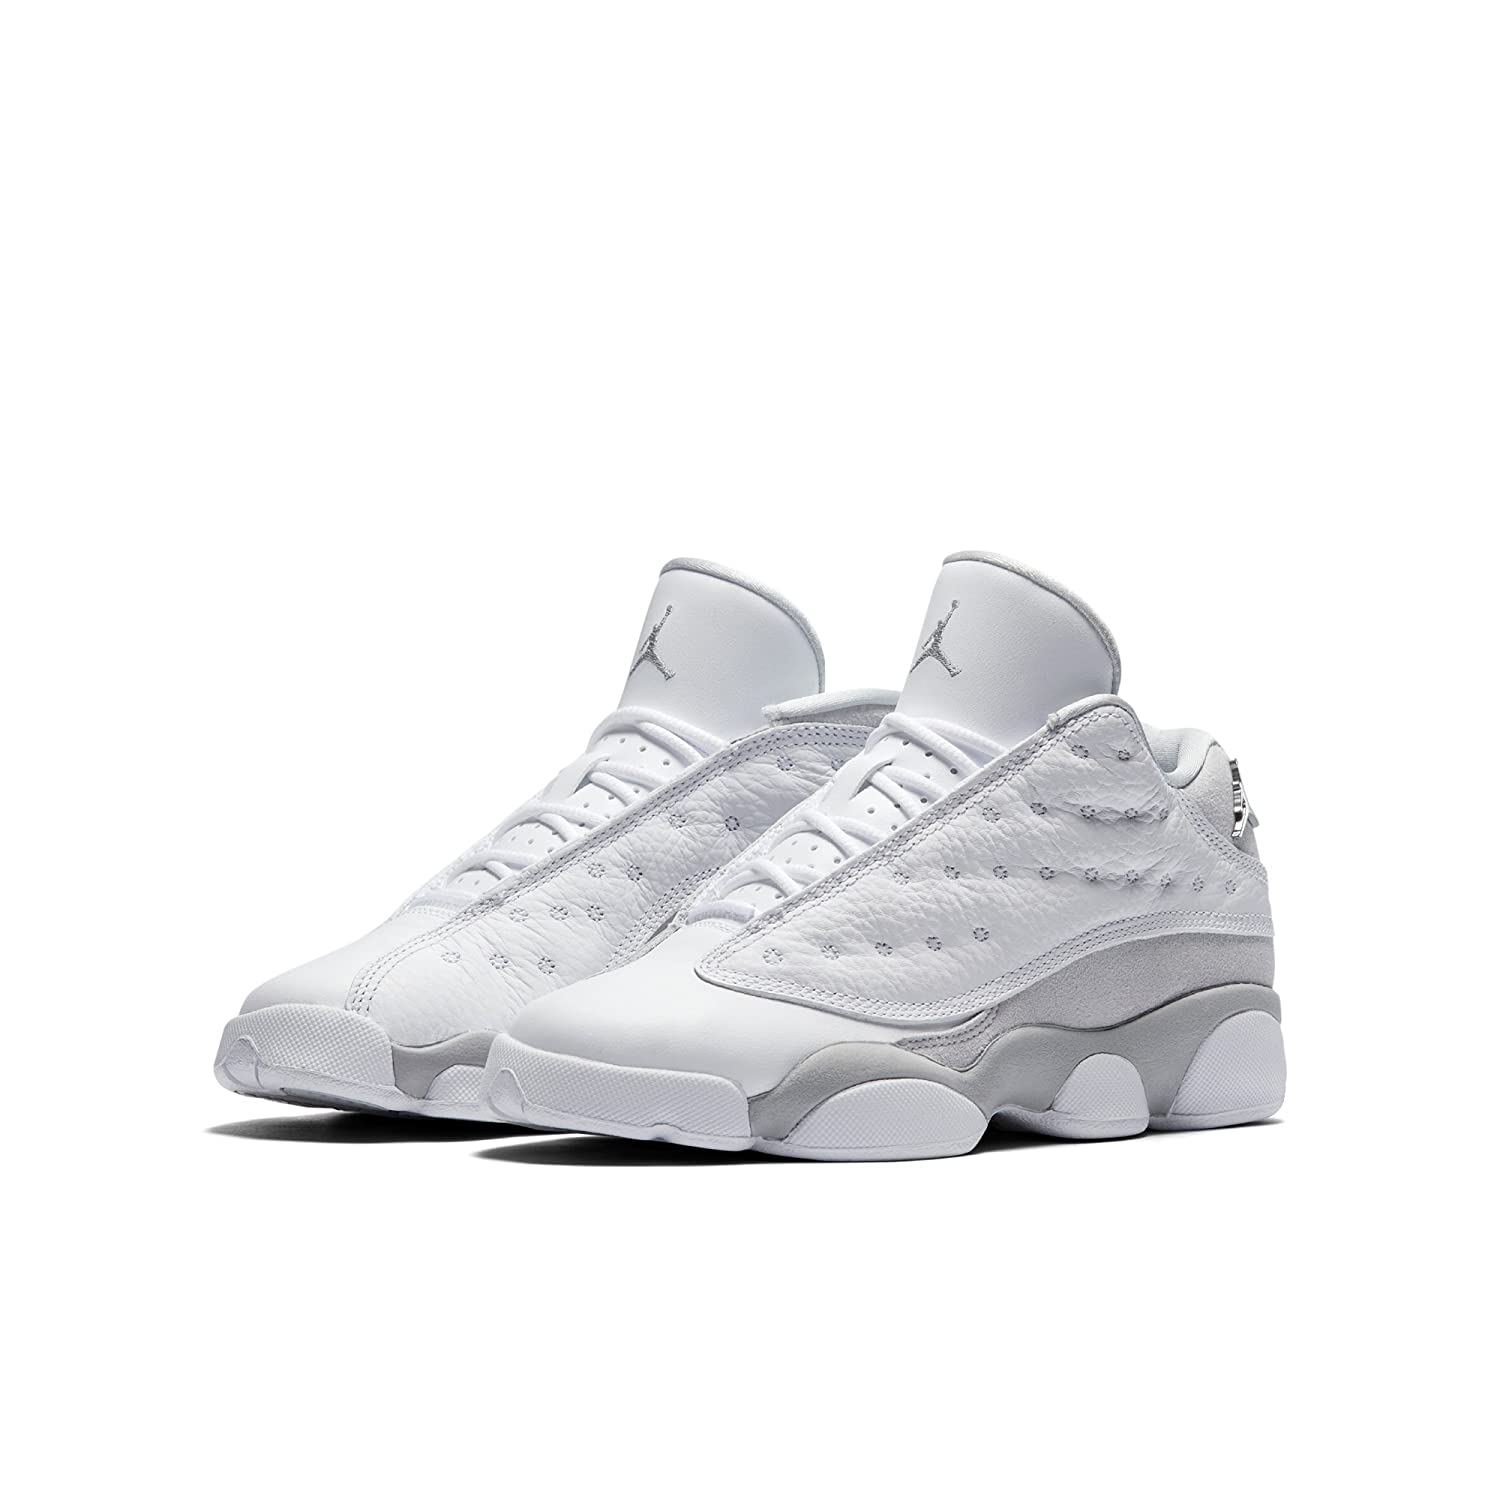 best sneakers 98ead 0793b AIR JORDAN 13 Retro Low BG (GS)  Pure Money  - 310811-100  Amazon.co.uk   Shoes   Bags